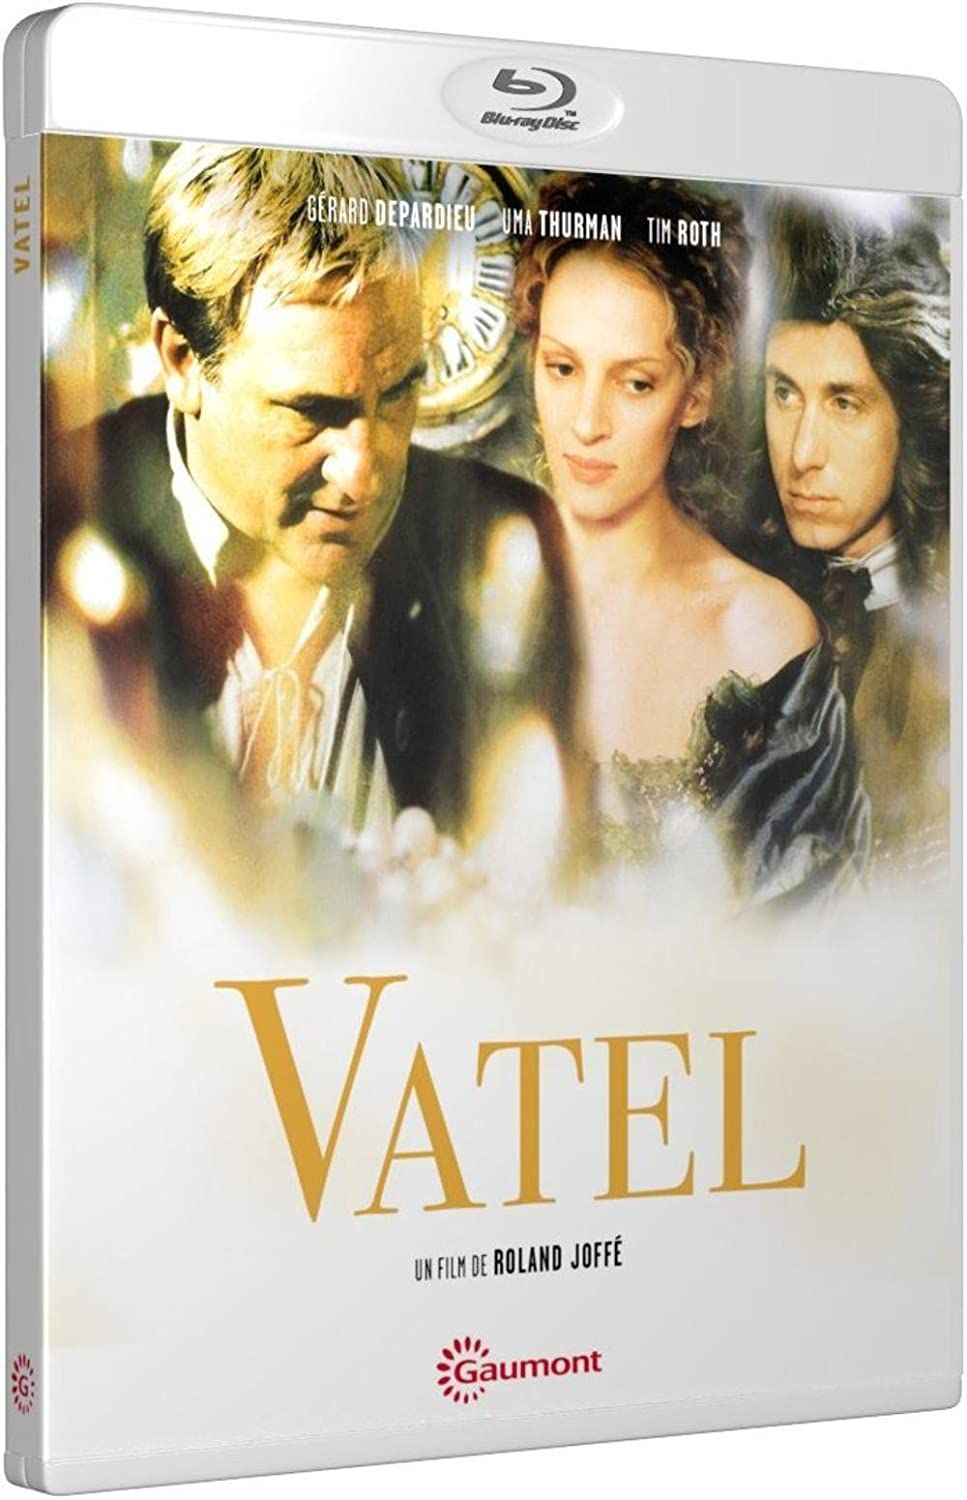 Vatel 2000 FRENCH 720p BluRay x264-MELBA